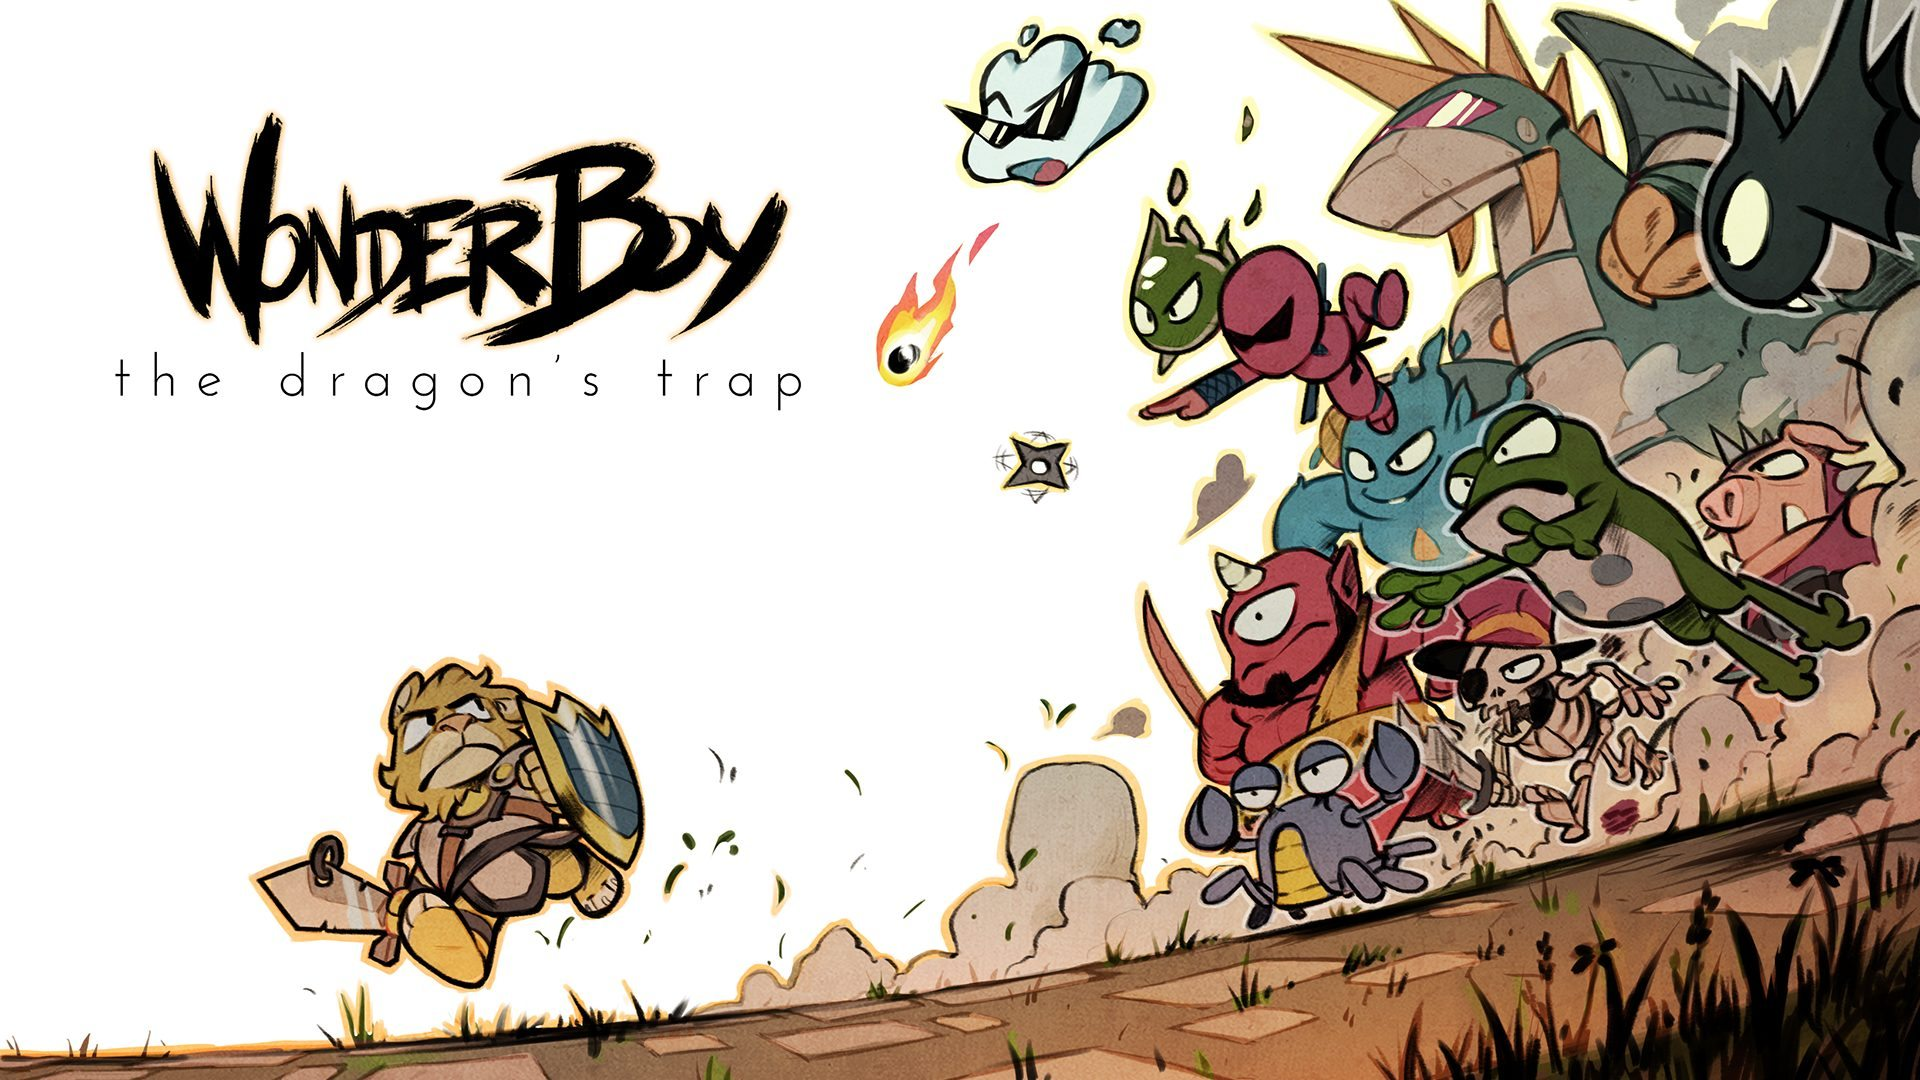 Wonder Boy: The Dragon's Trap Dev Diary Released